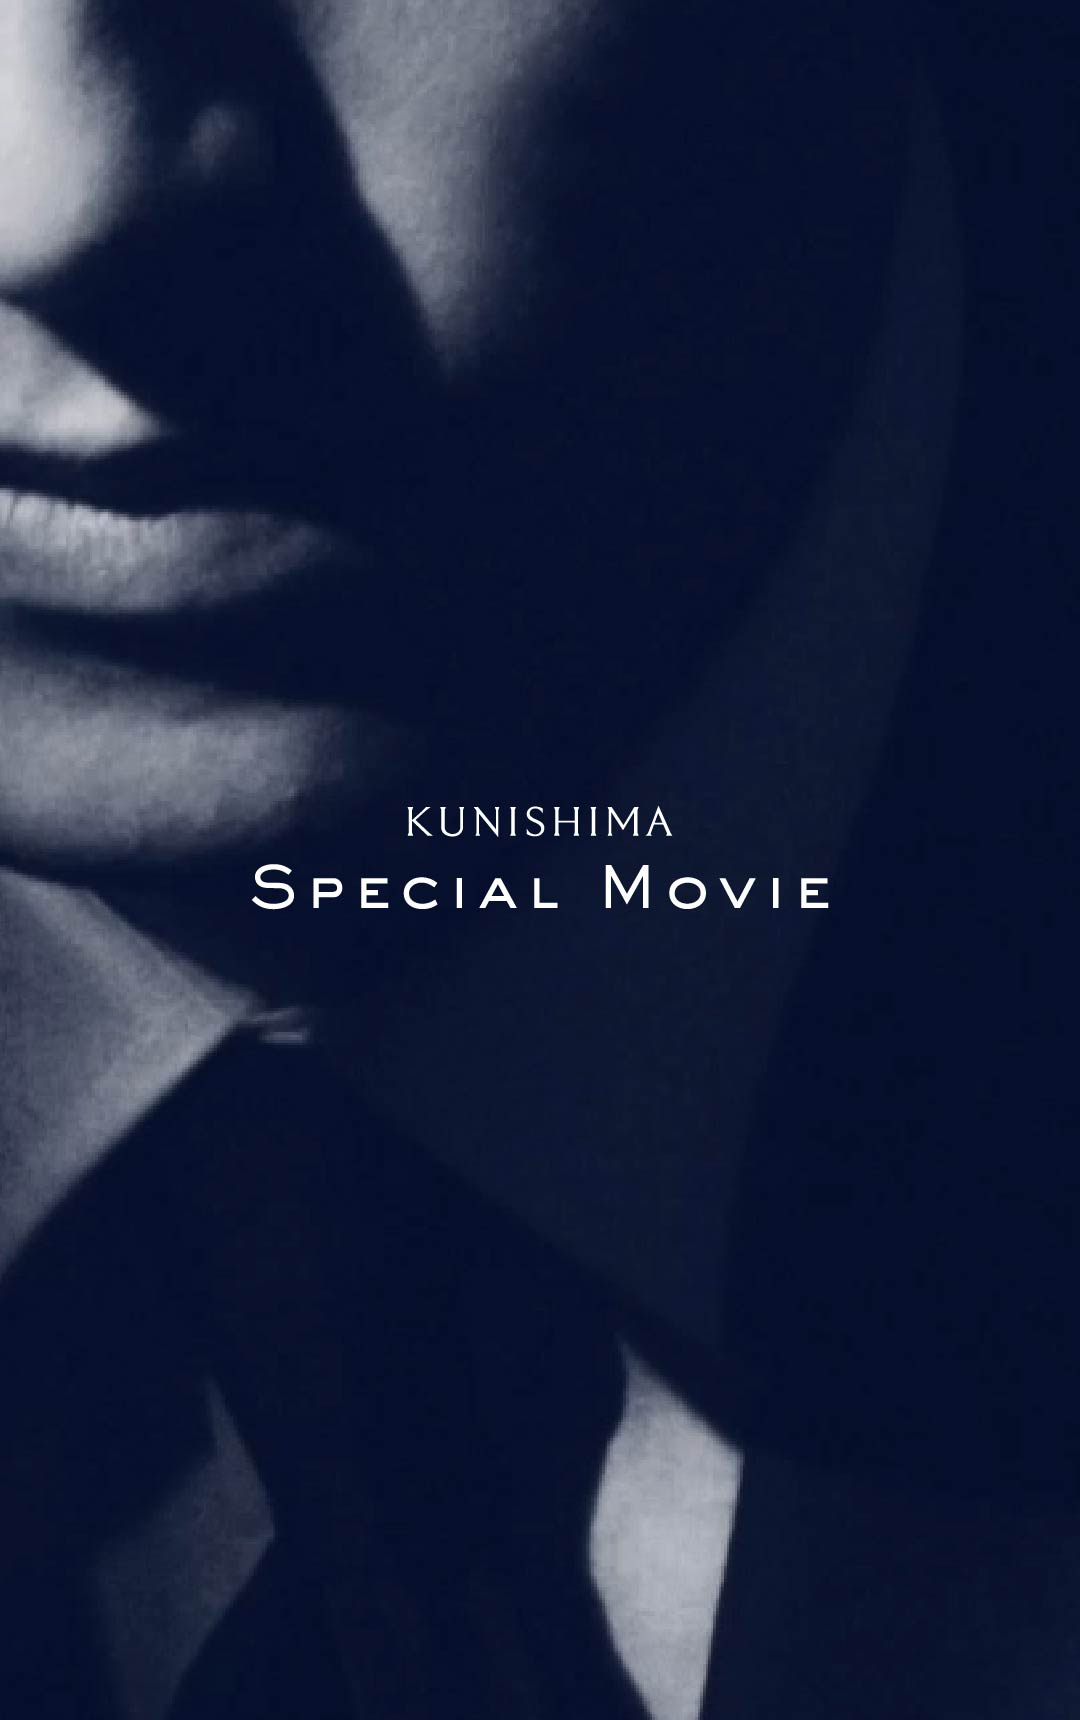 KUNISHIMA SPECIAL MOVIE